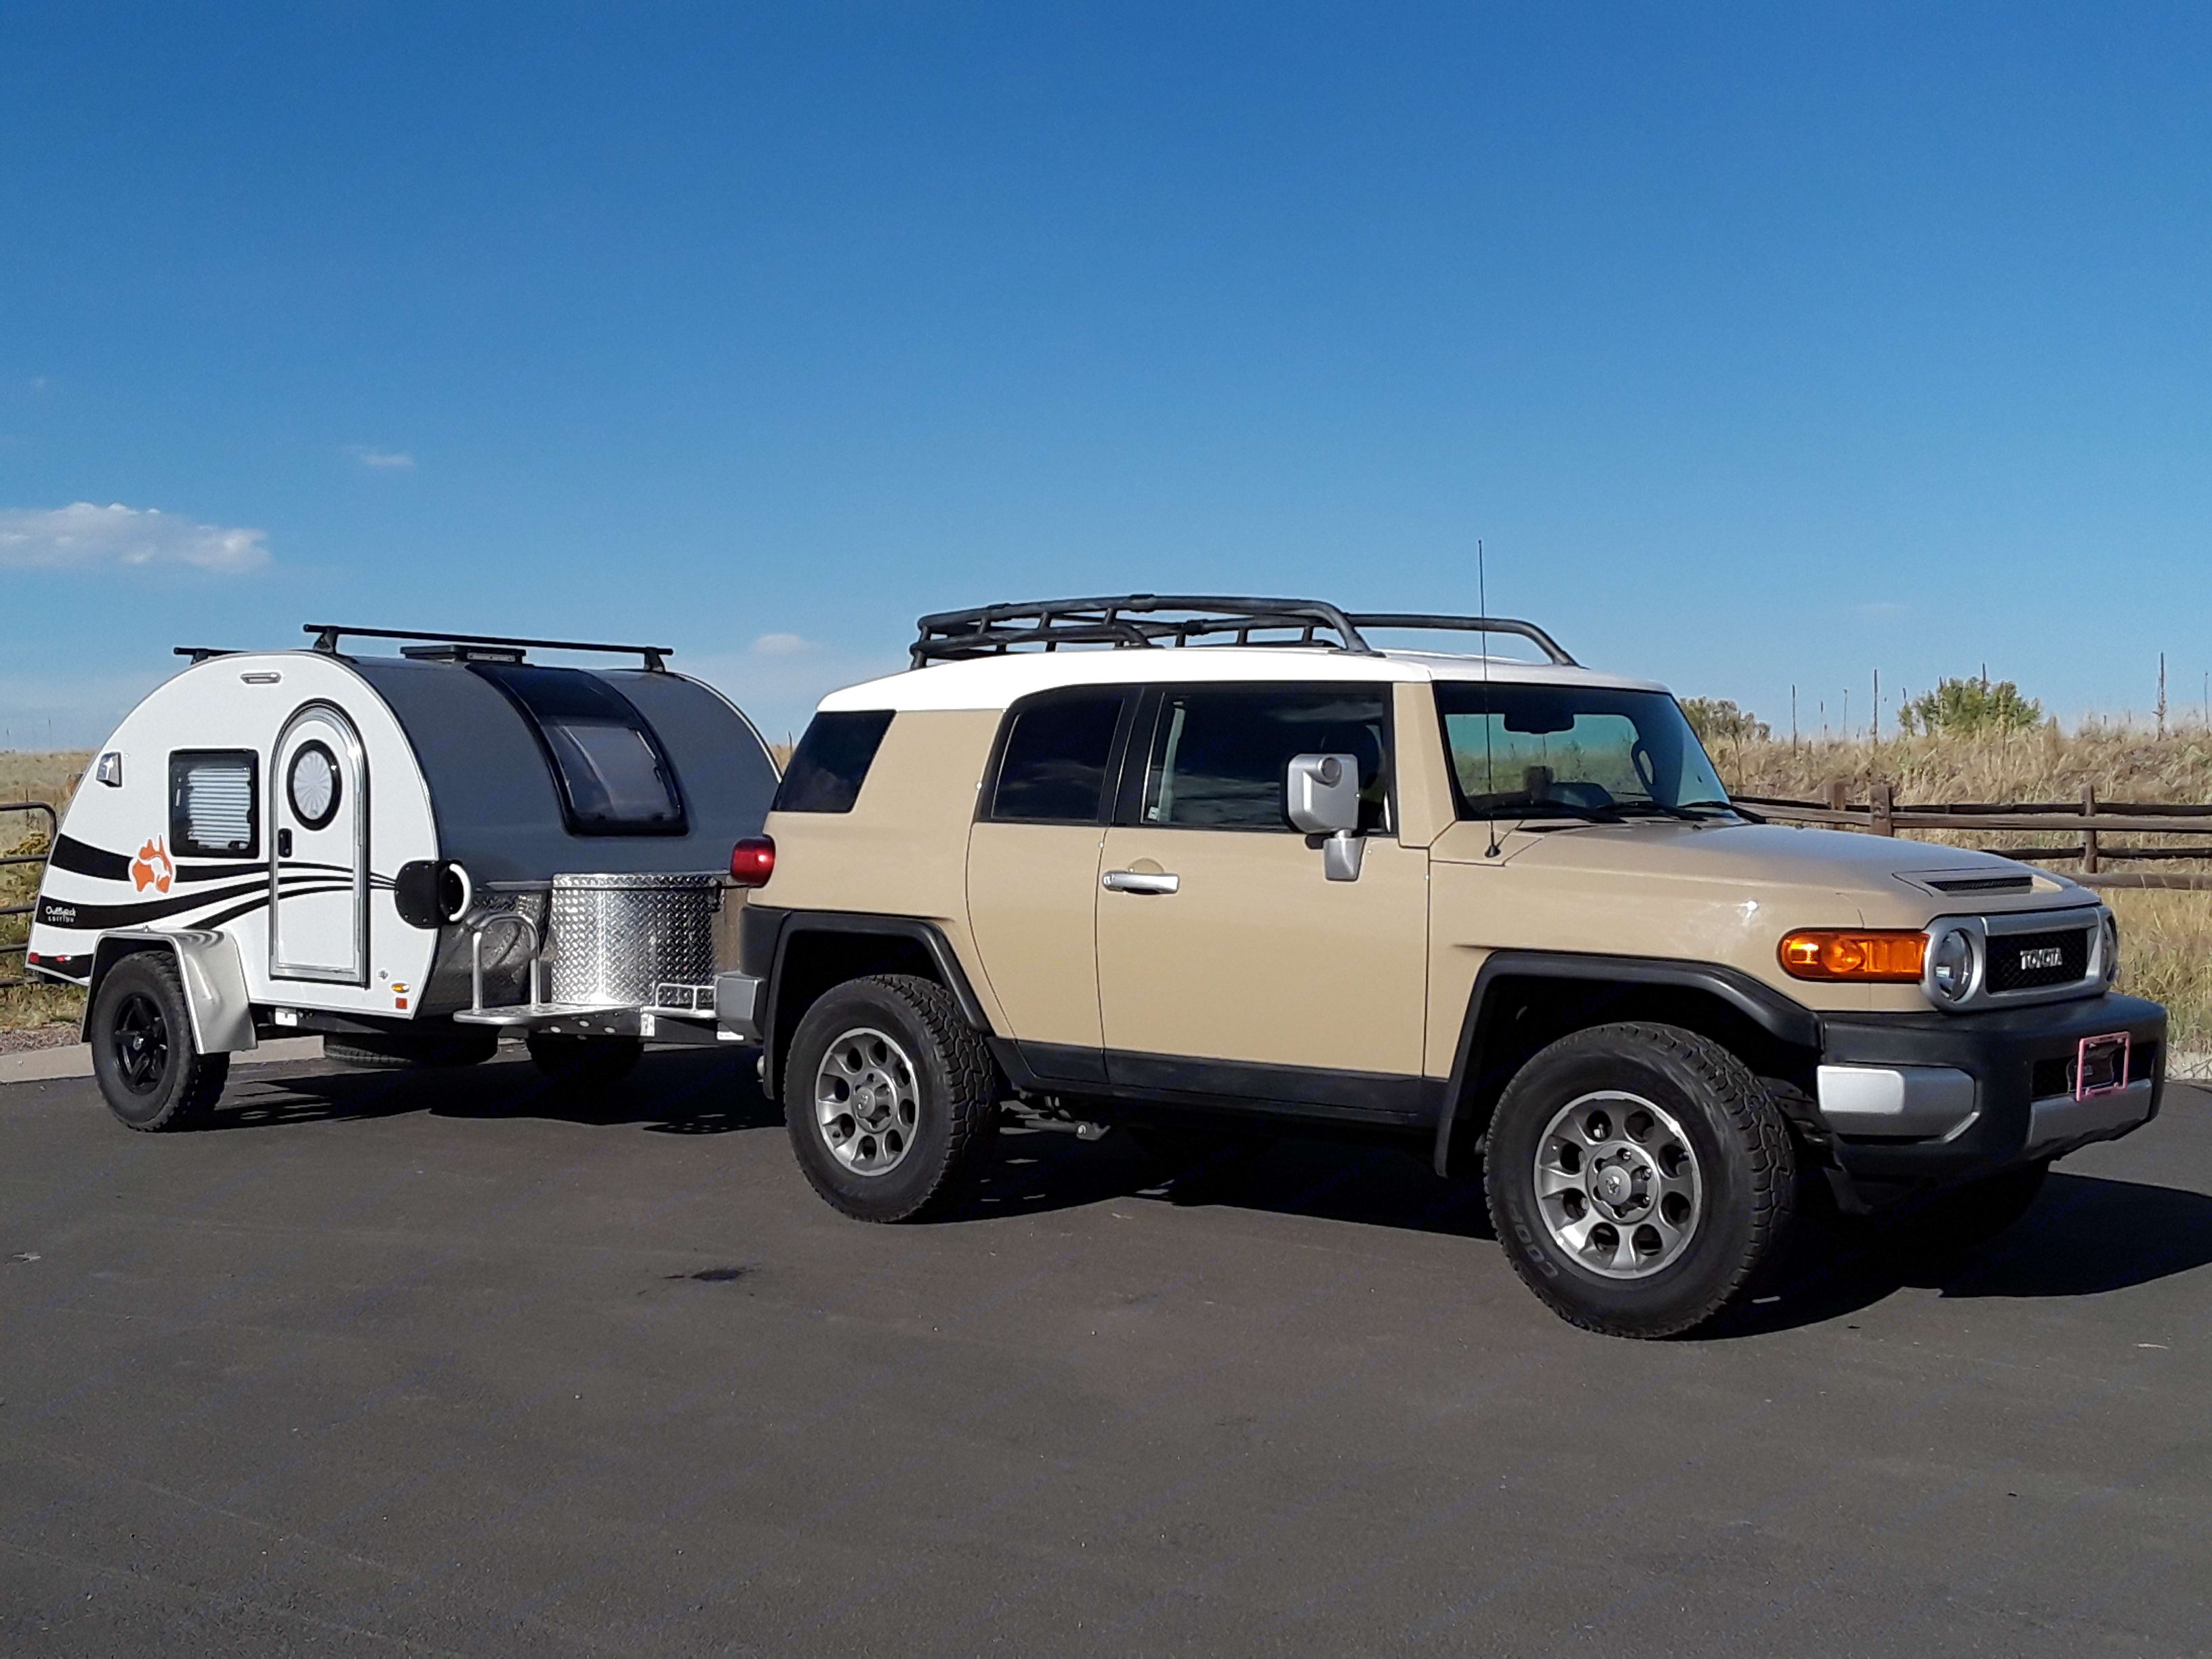 Our Rugged FJ Cruiser with Hogan travel package... ready to take you on your Southwest adventure!. Toyota FJ Cruiser 2014